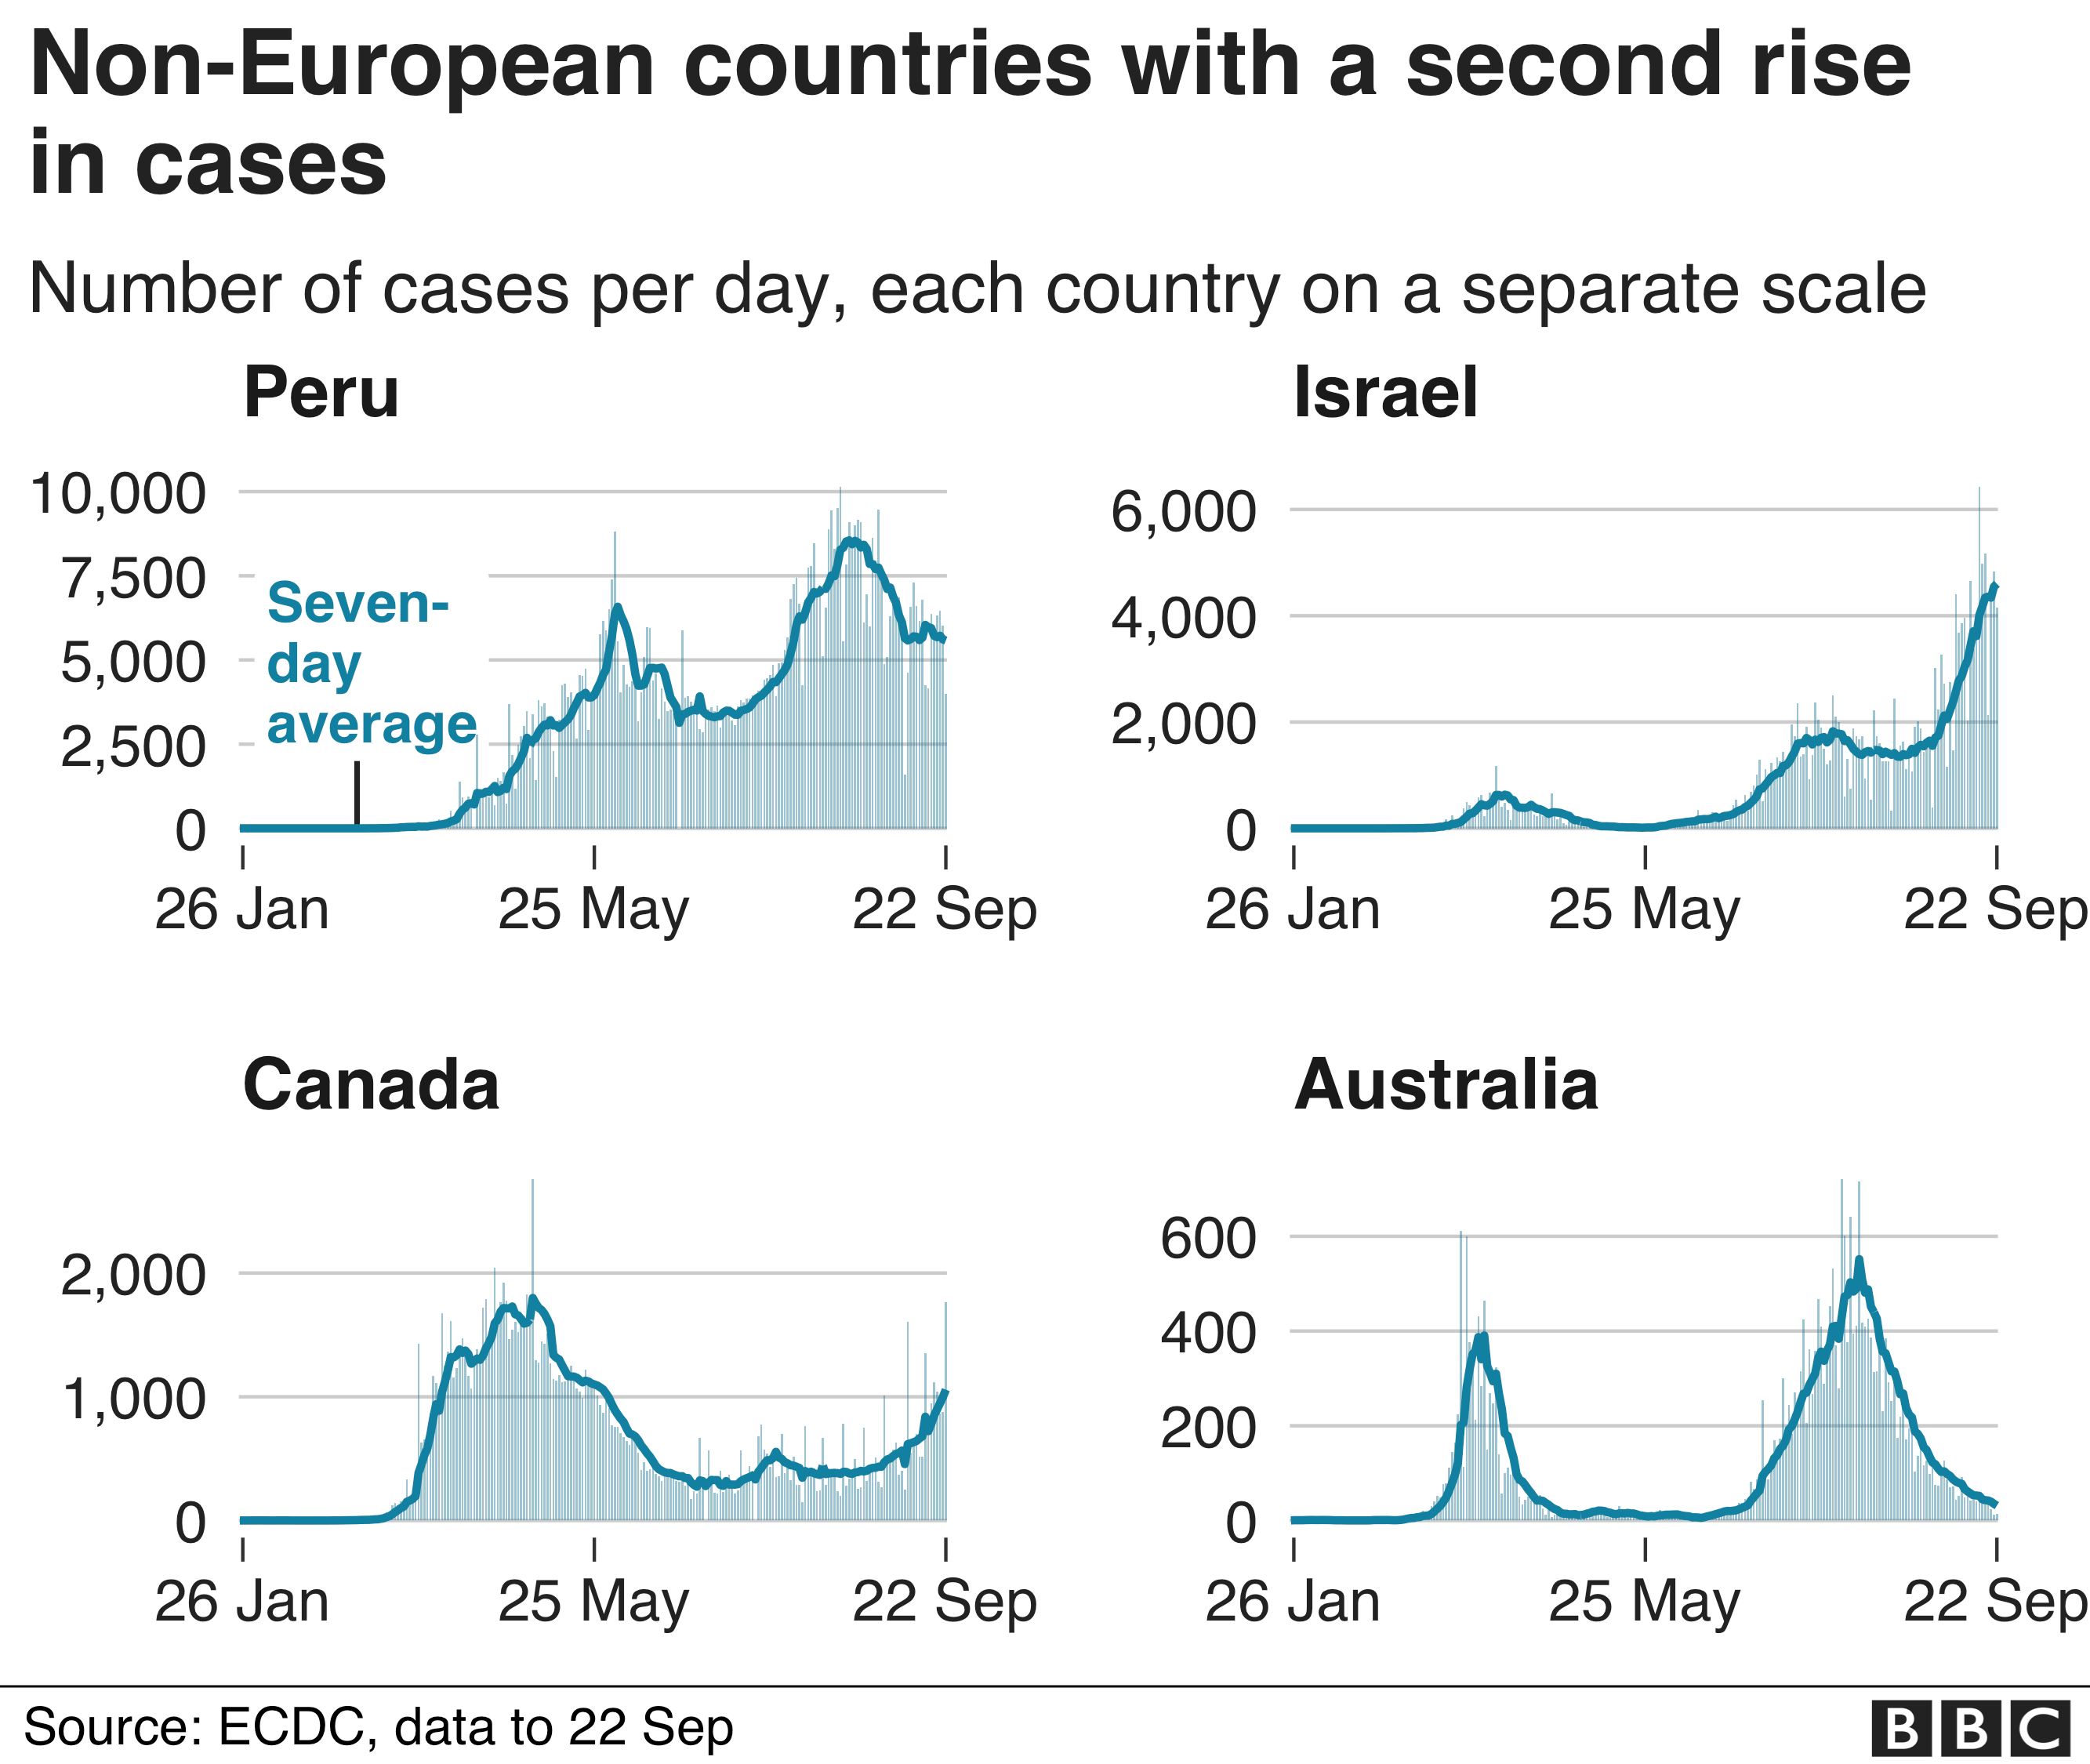 charts show non-European countries with a second rise i cases, Peru, Israel, Canada and Australia